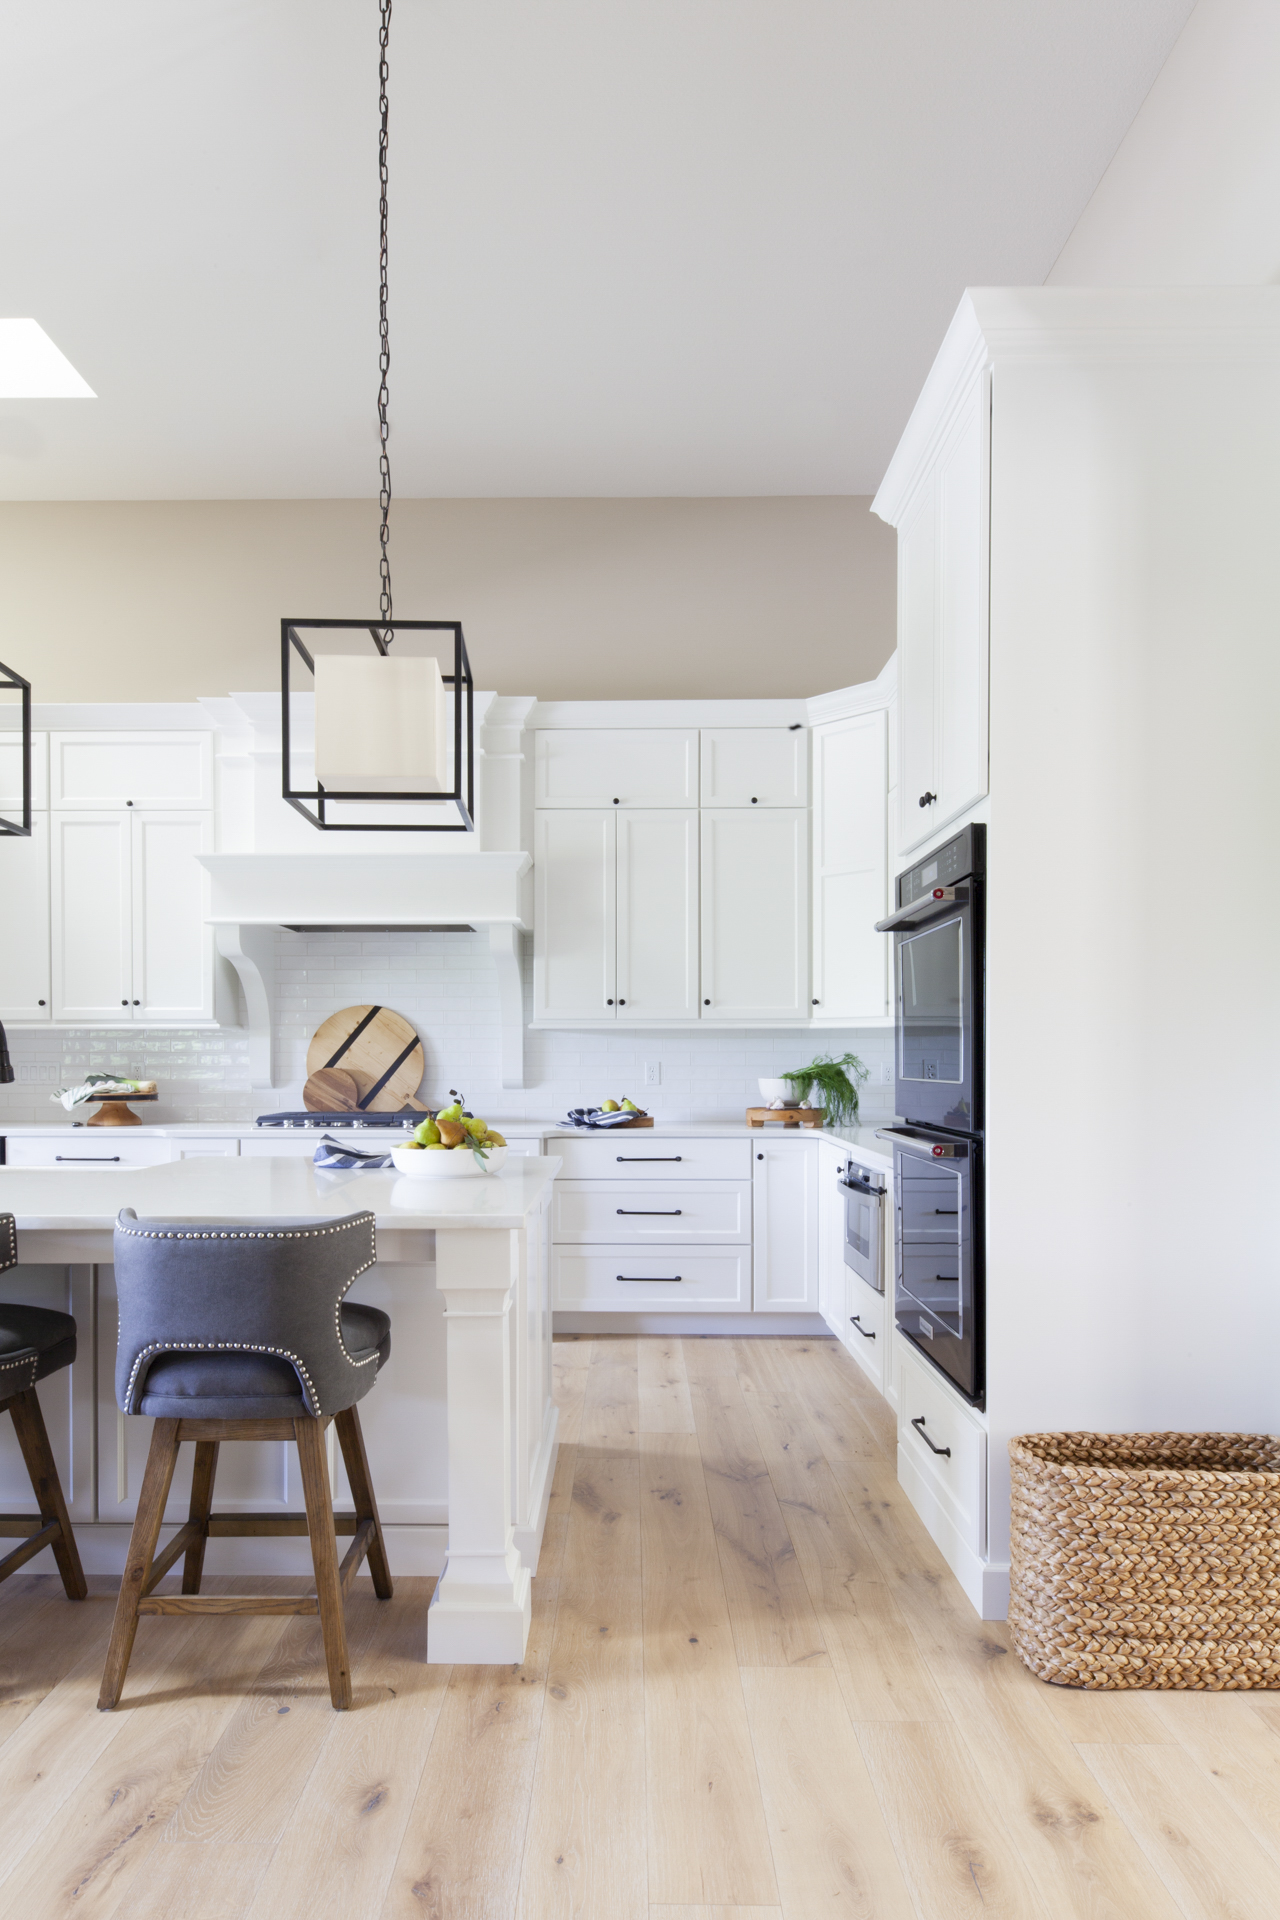 before-and-after-home-reveal-scout-and-nimble-lake-view-luxe-country-interior-design-kitchen-luxury-light-modern-pendant-white-kitchen-25.jpg